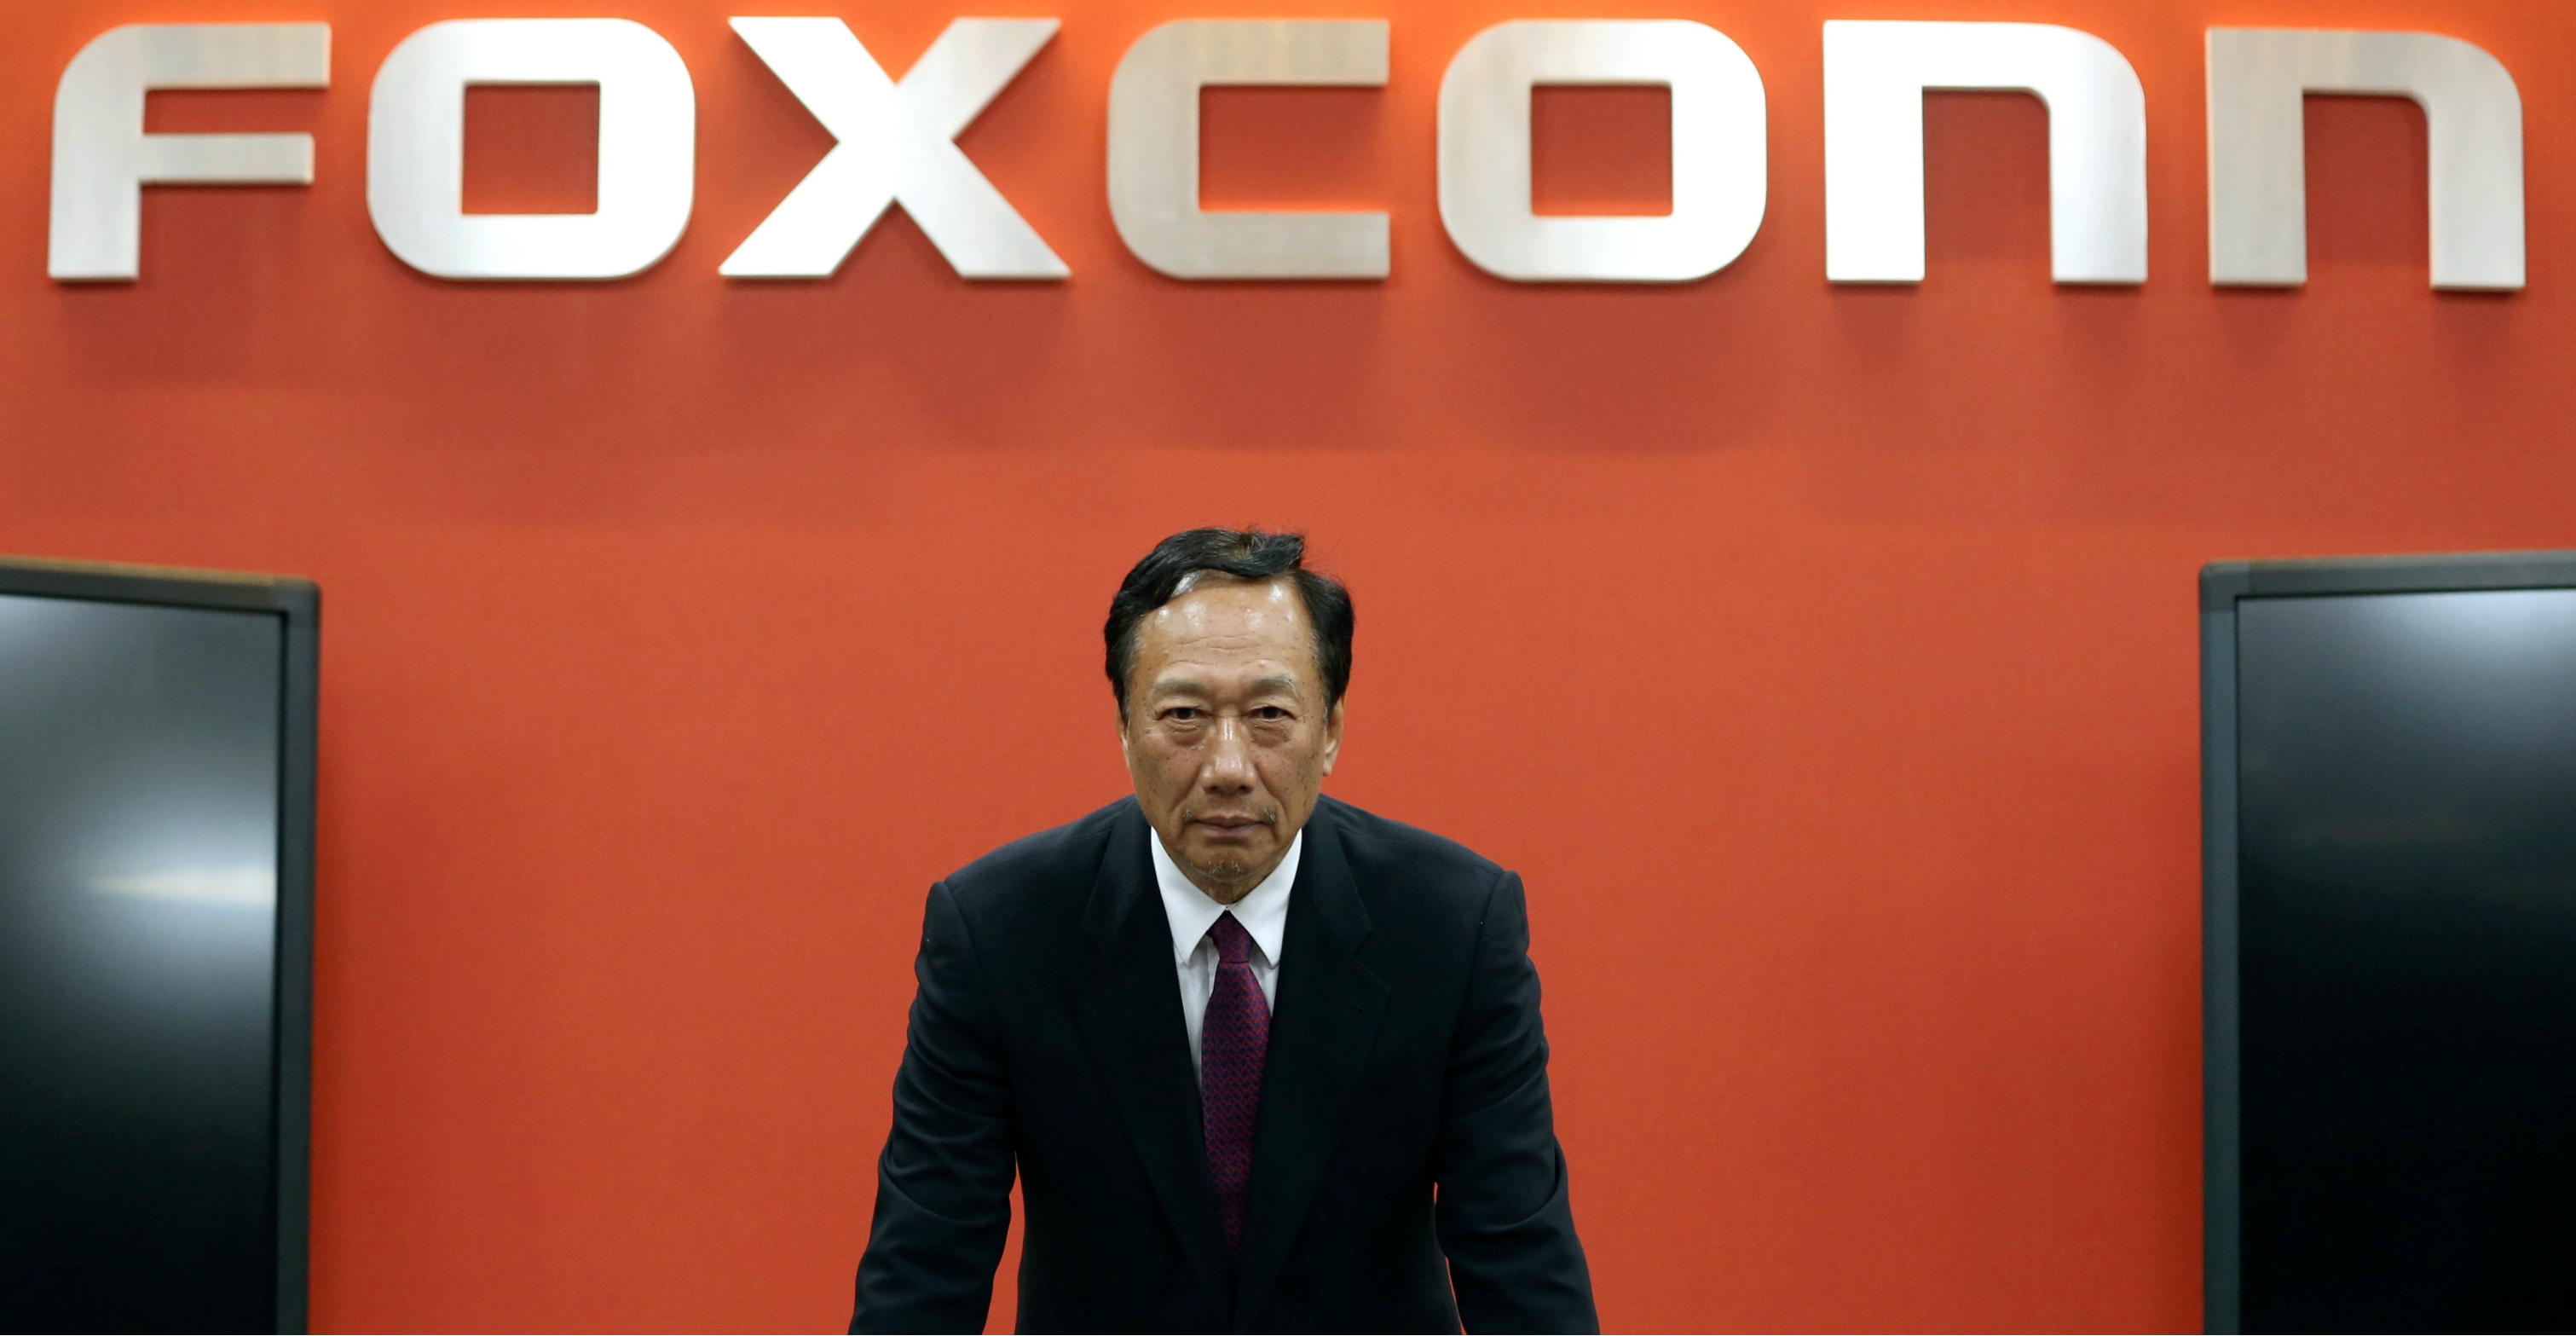 Aside from having a vast business empire, Terry Gou is friends with Chinese President Xi Jinping and US President Donald Trump, which should make him a much more pragmatic leader than other Taiwanese politicians. Photo: Reuters